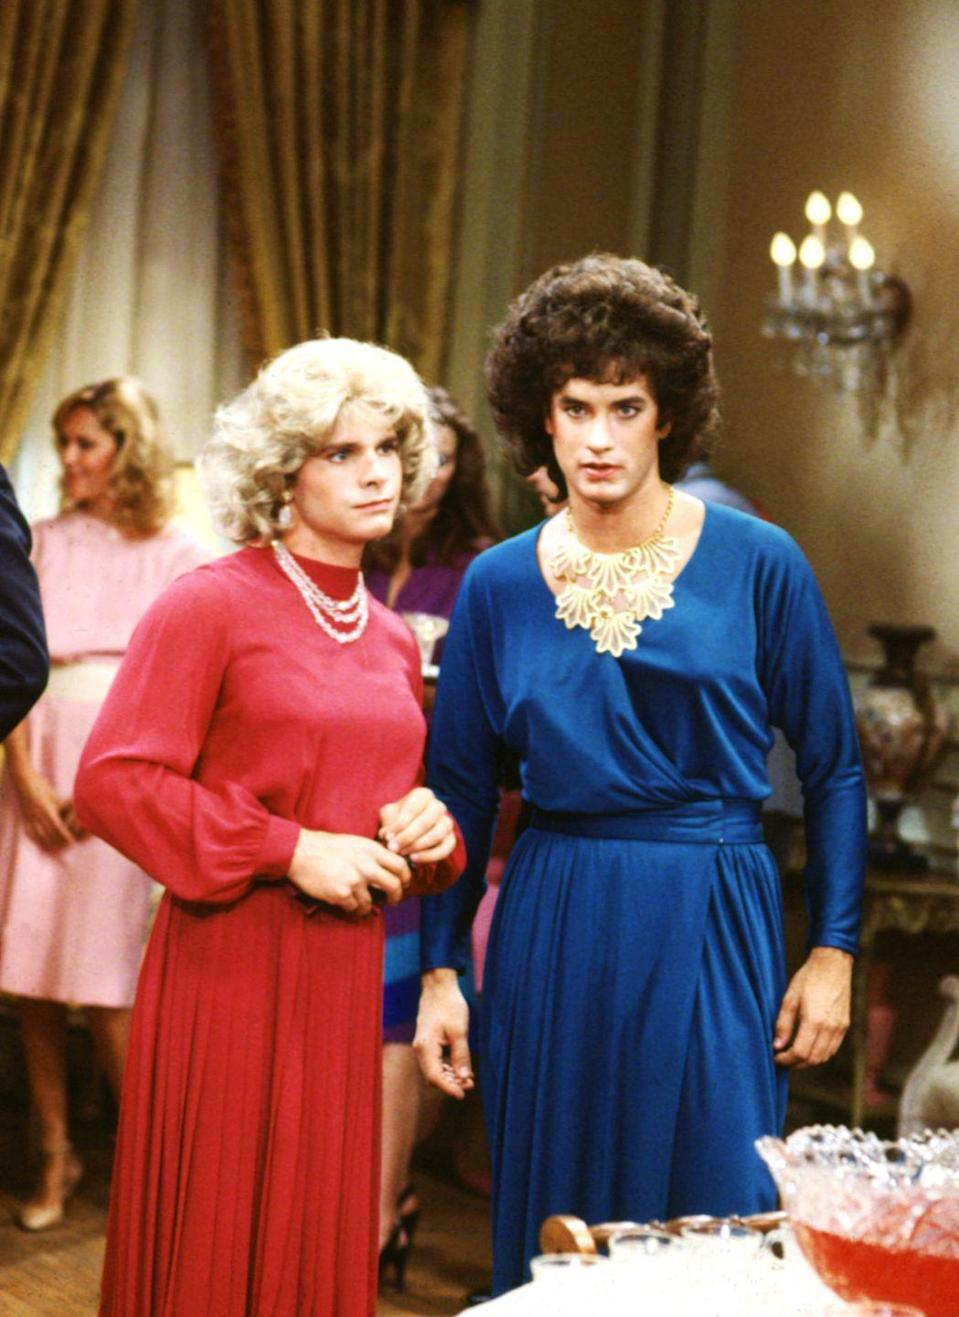 <p>This lighthearted comedy starring Tom Hanks isn't as offensive as others on this list, but the plot just isn't feasible today. A show about two men dressing in drag in order to score cheap rent in an all-female apartment building doesn't make any sense in today's more enlightened culture when it comes to gender identity. </p>